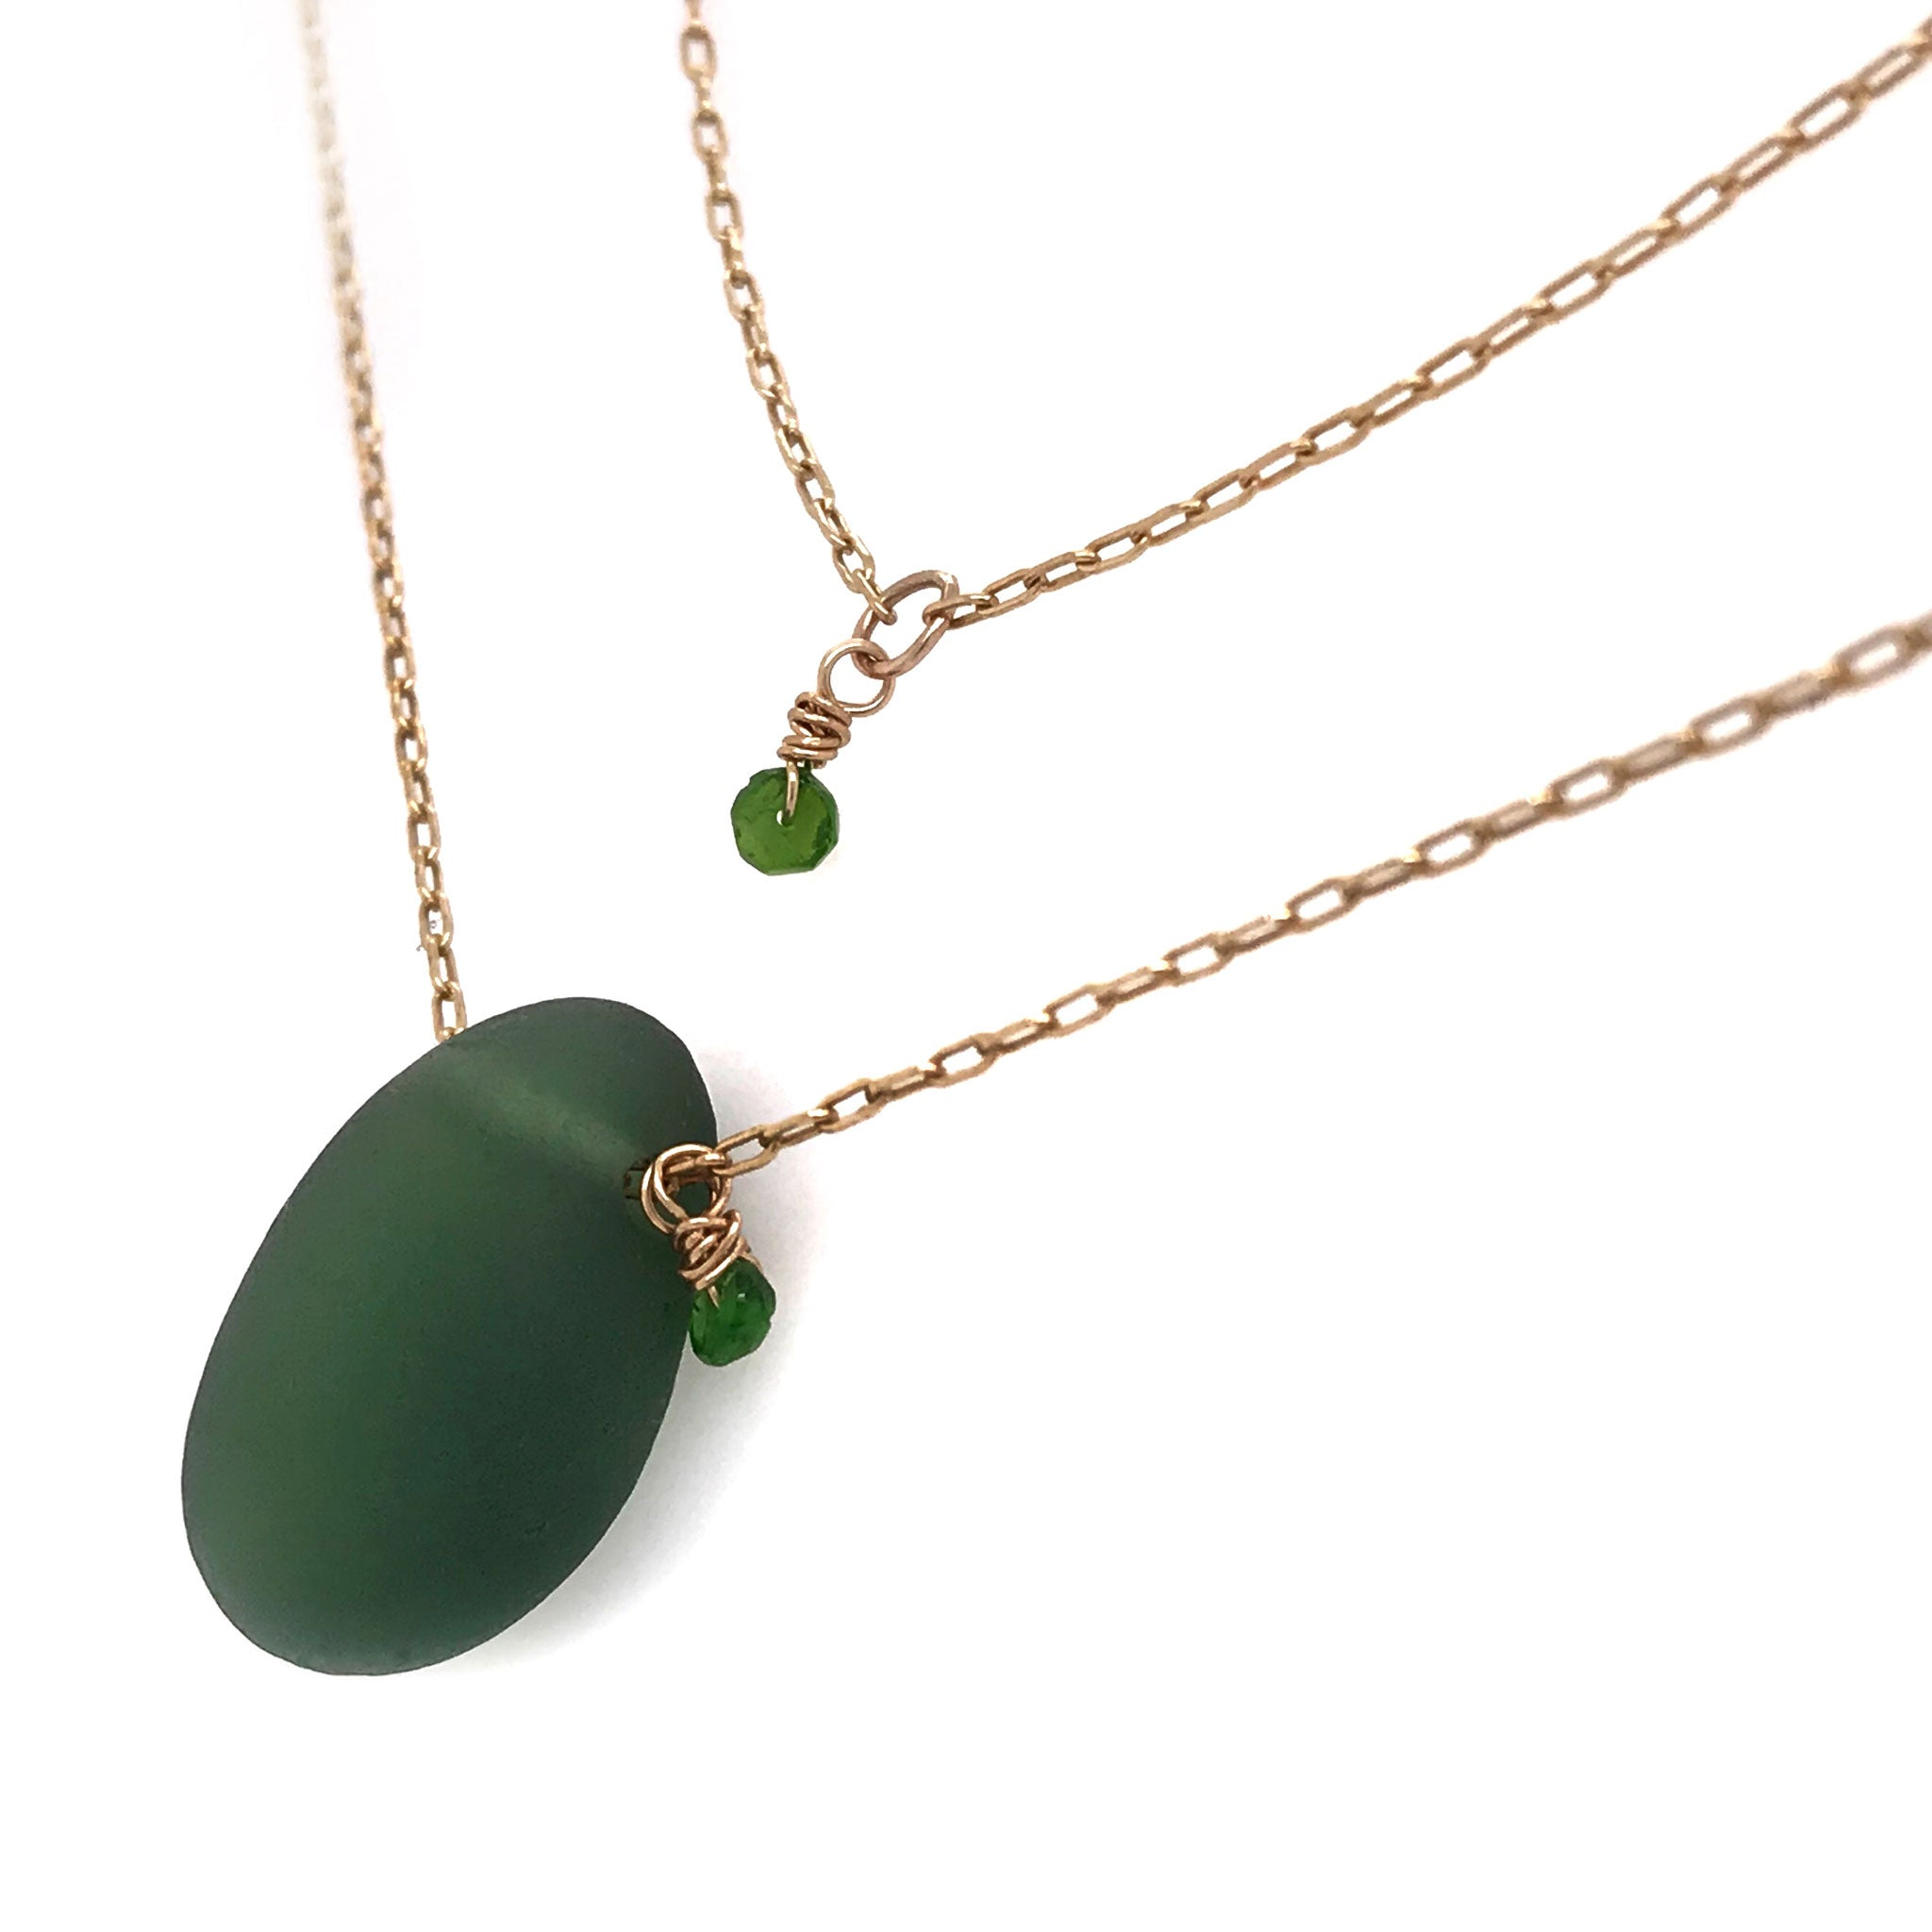 green seaglass long gold necklace with green stones